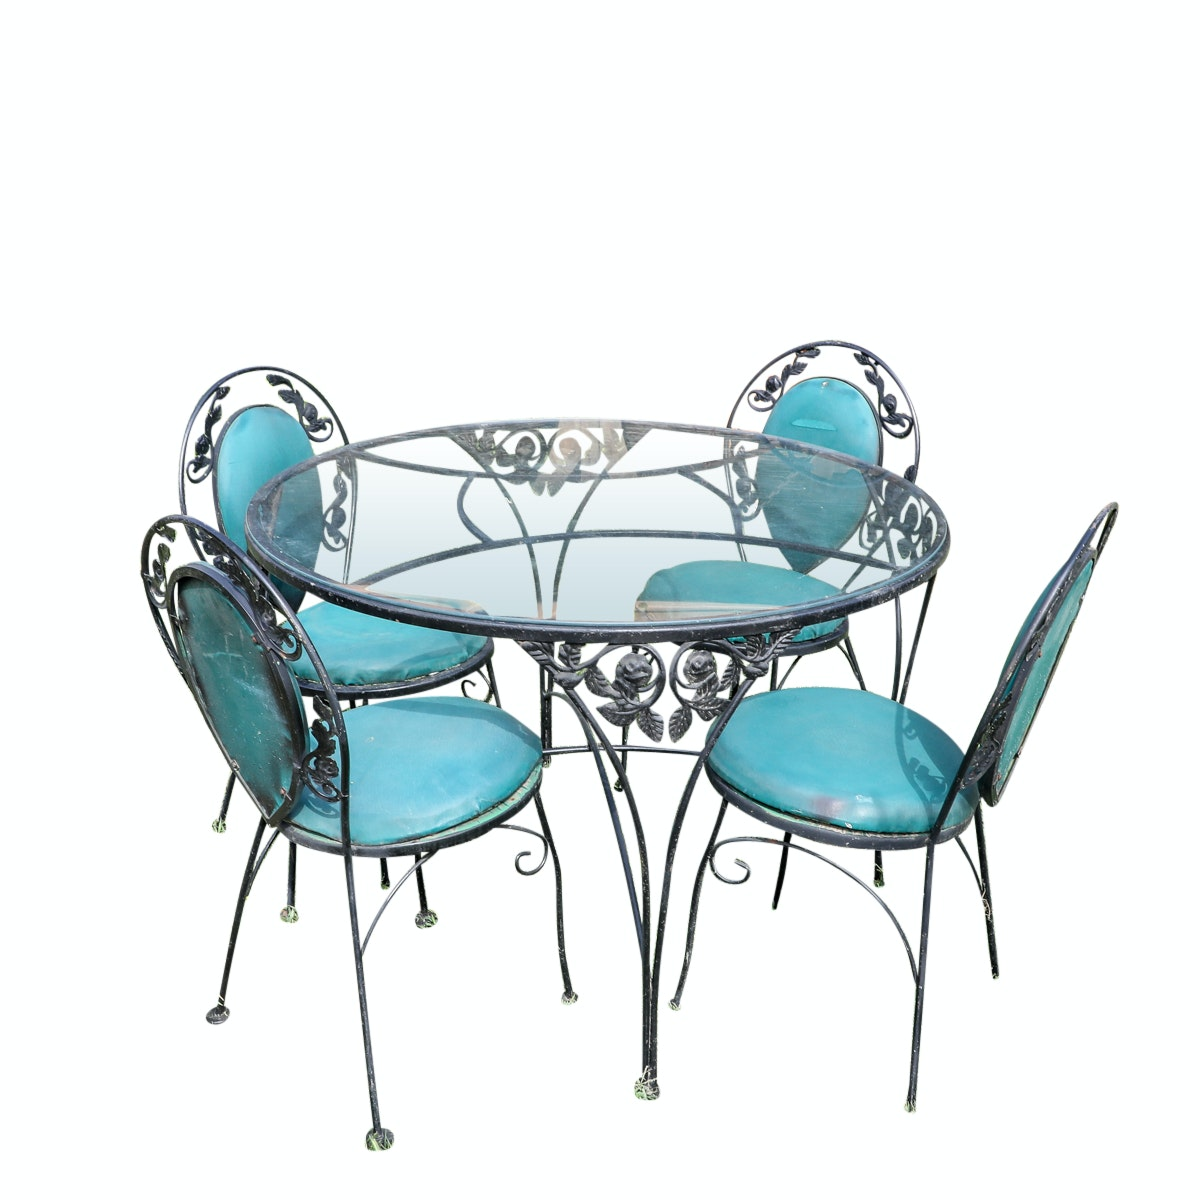 Round Glass Top Wrought Iron Patio Table with Chairs